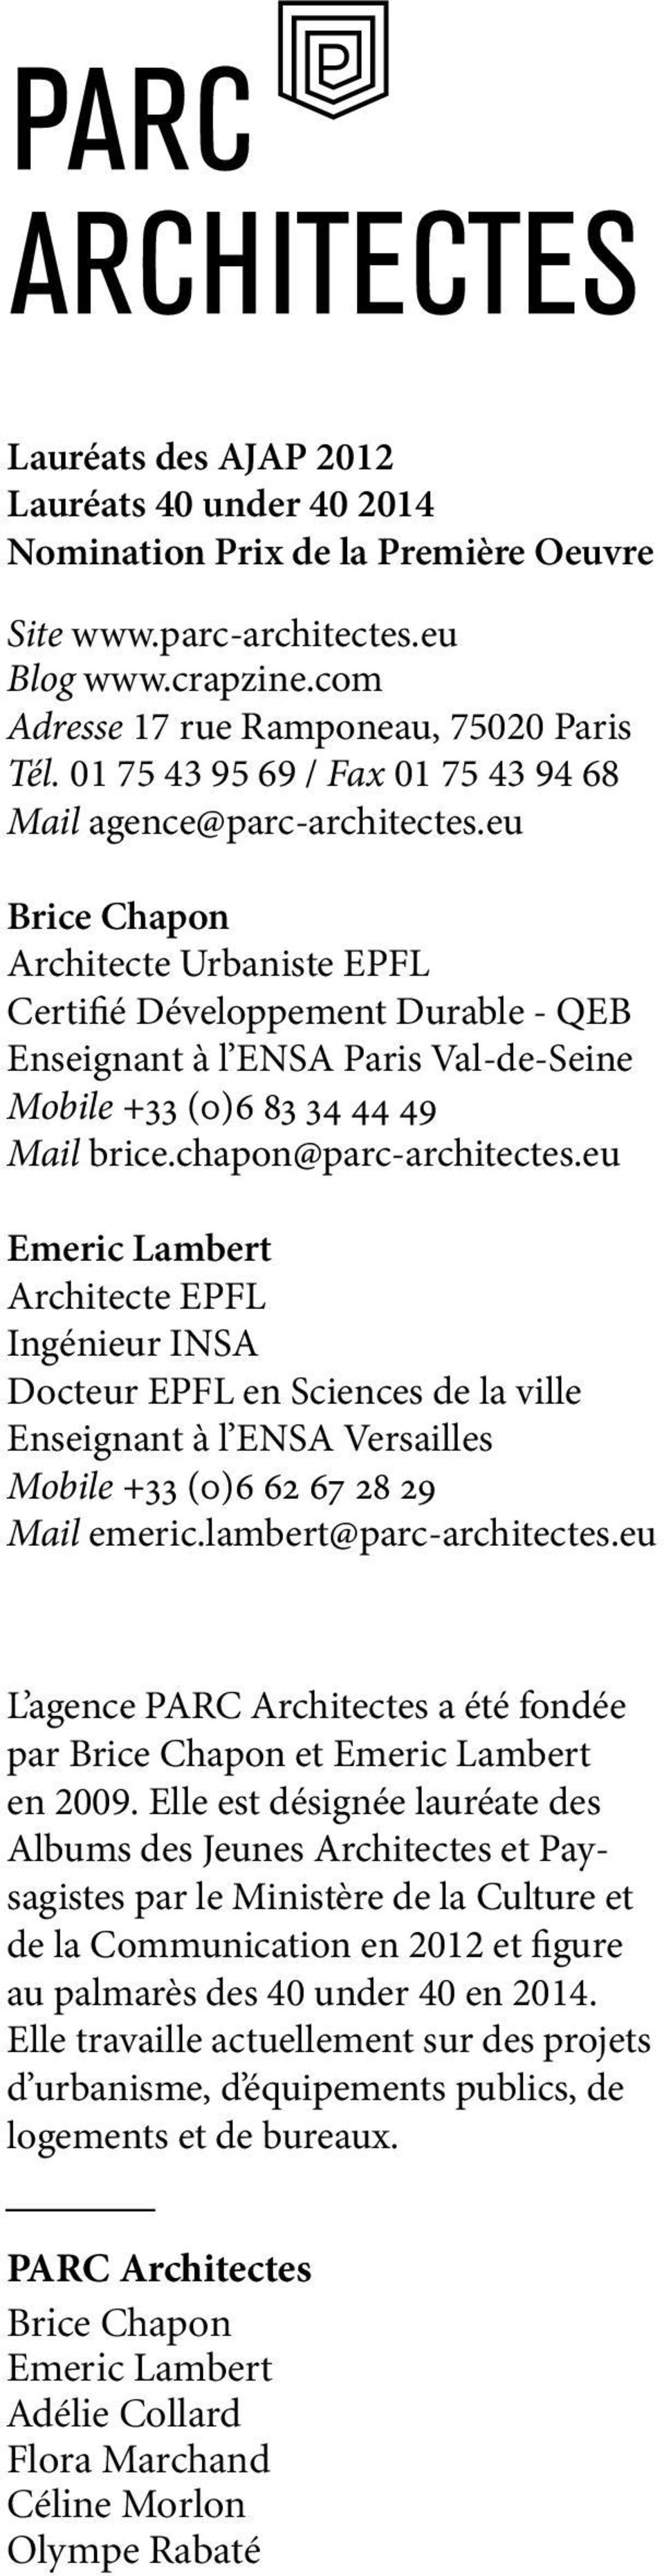 eu Brice Chapon Architecte Urbaniste EPFL Certifié Développement Durable - QEB Enseignant à l ENSA Paris Val-de-Seine Mobile +33 (0)6 83 34 44 49 Mail brice.chapon@parc-architectes.